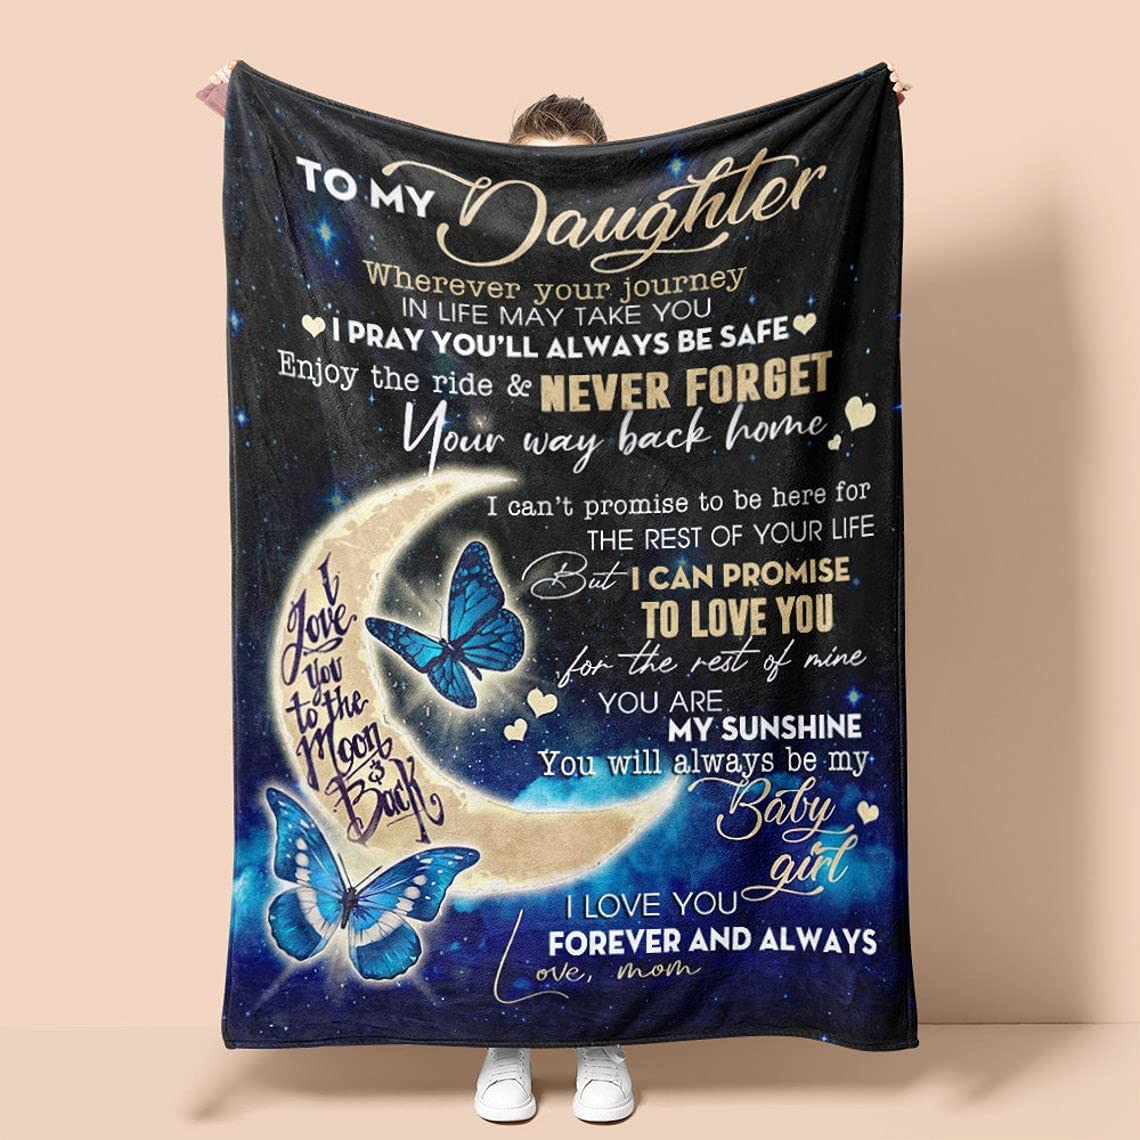 Outlet ☆ Free Shipping Custom Blanket for Daughter from fro My Limited time for free shipping to Mom